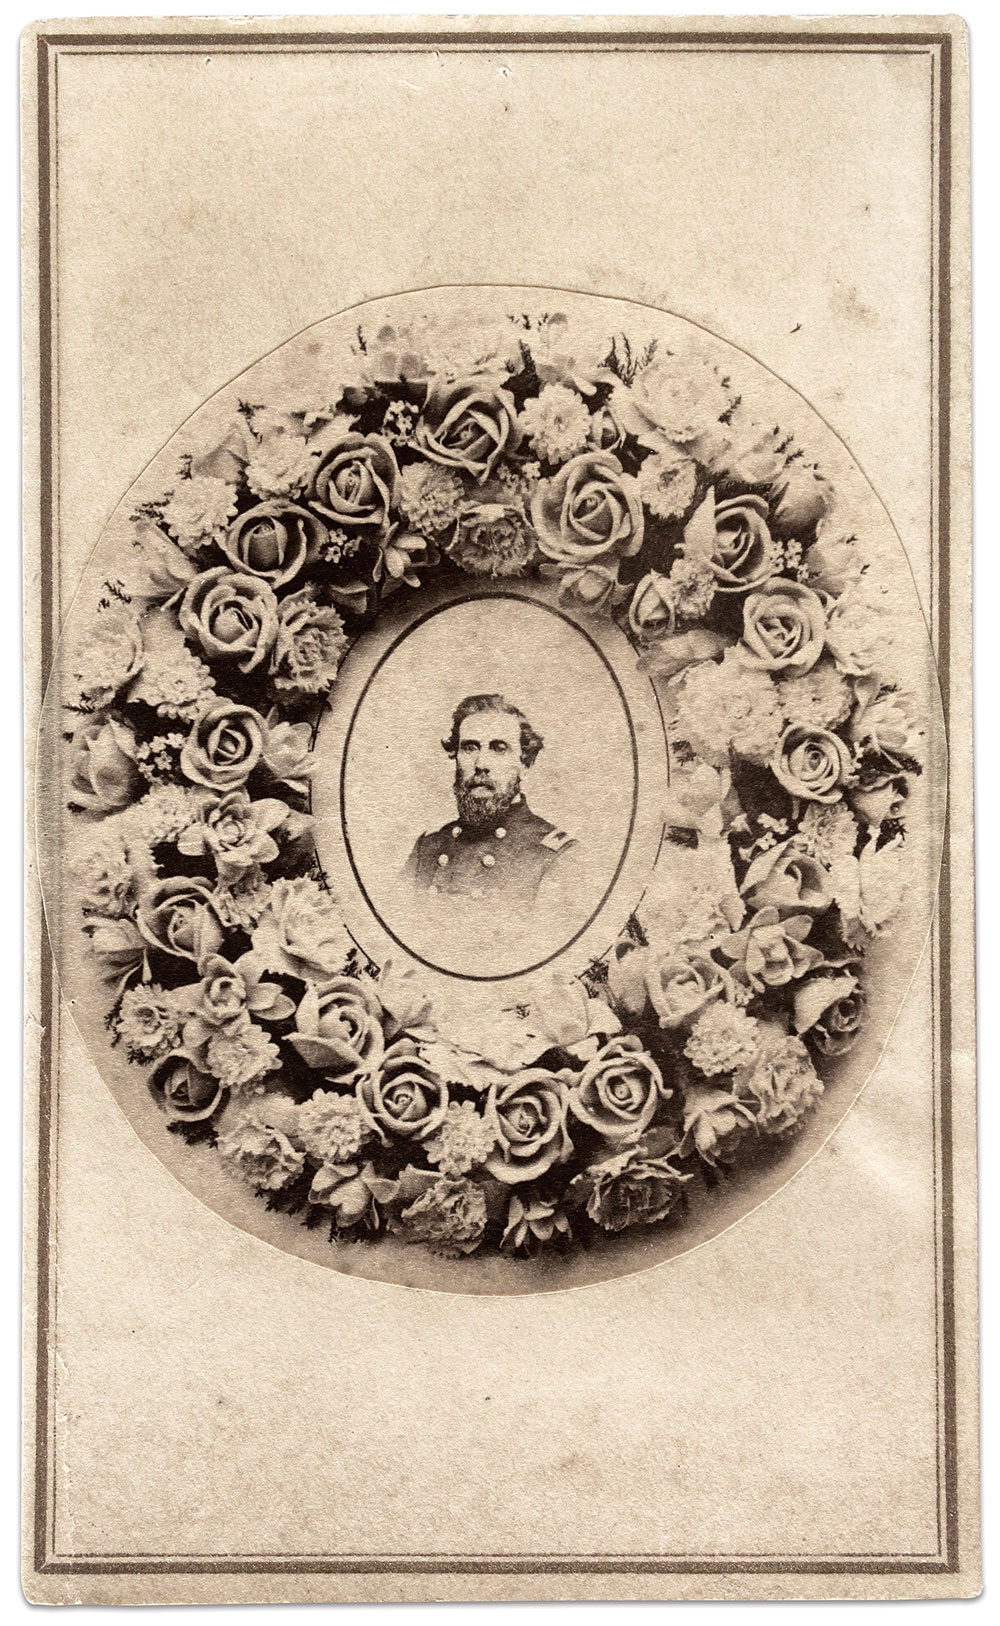 Carte de visite by A.W. Paradise of New York City. Buck Zaidel Collection.